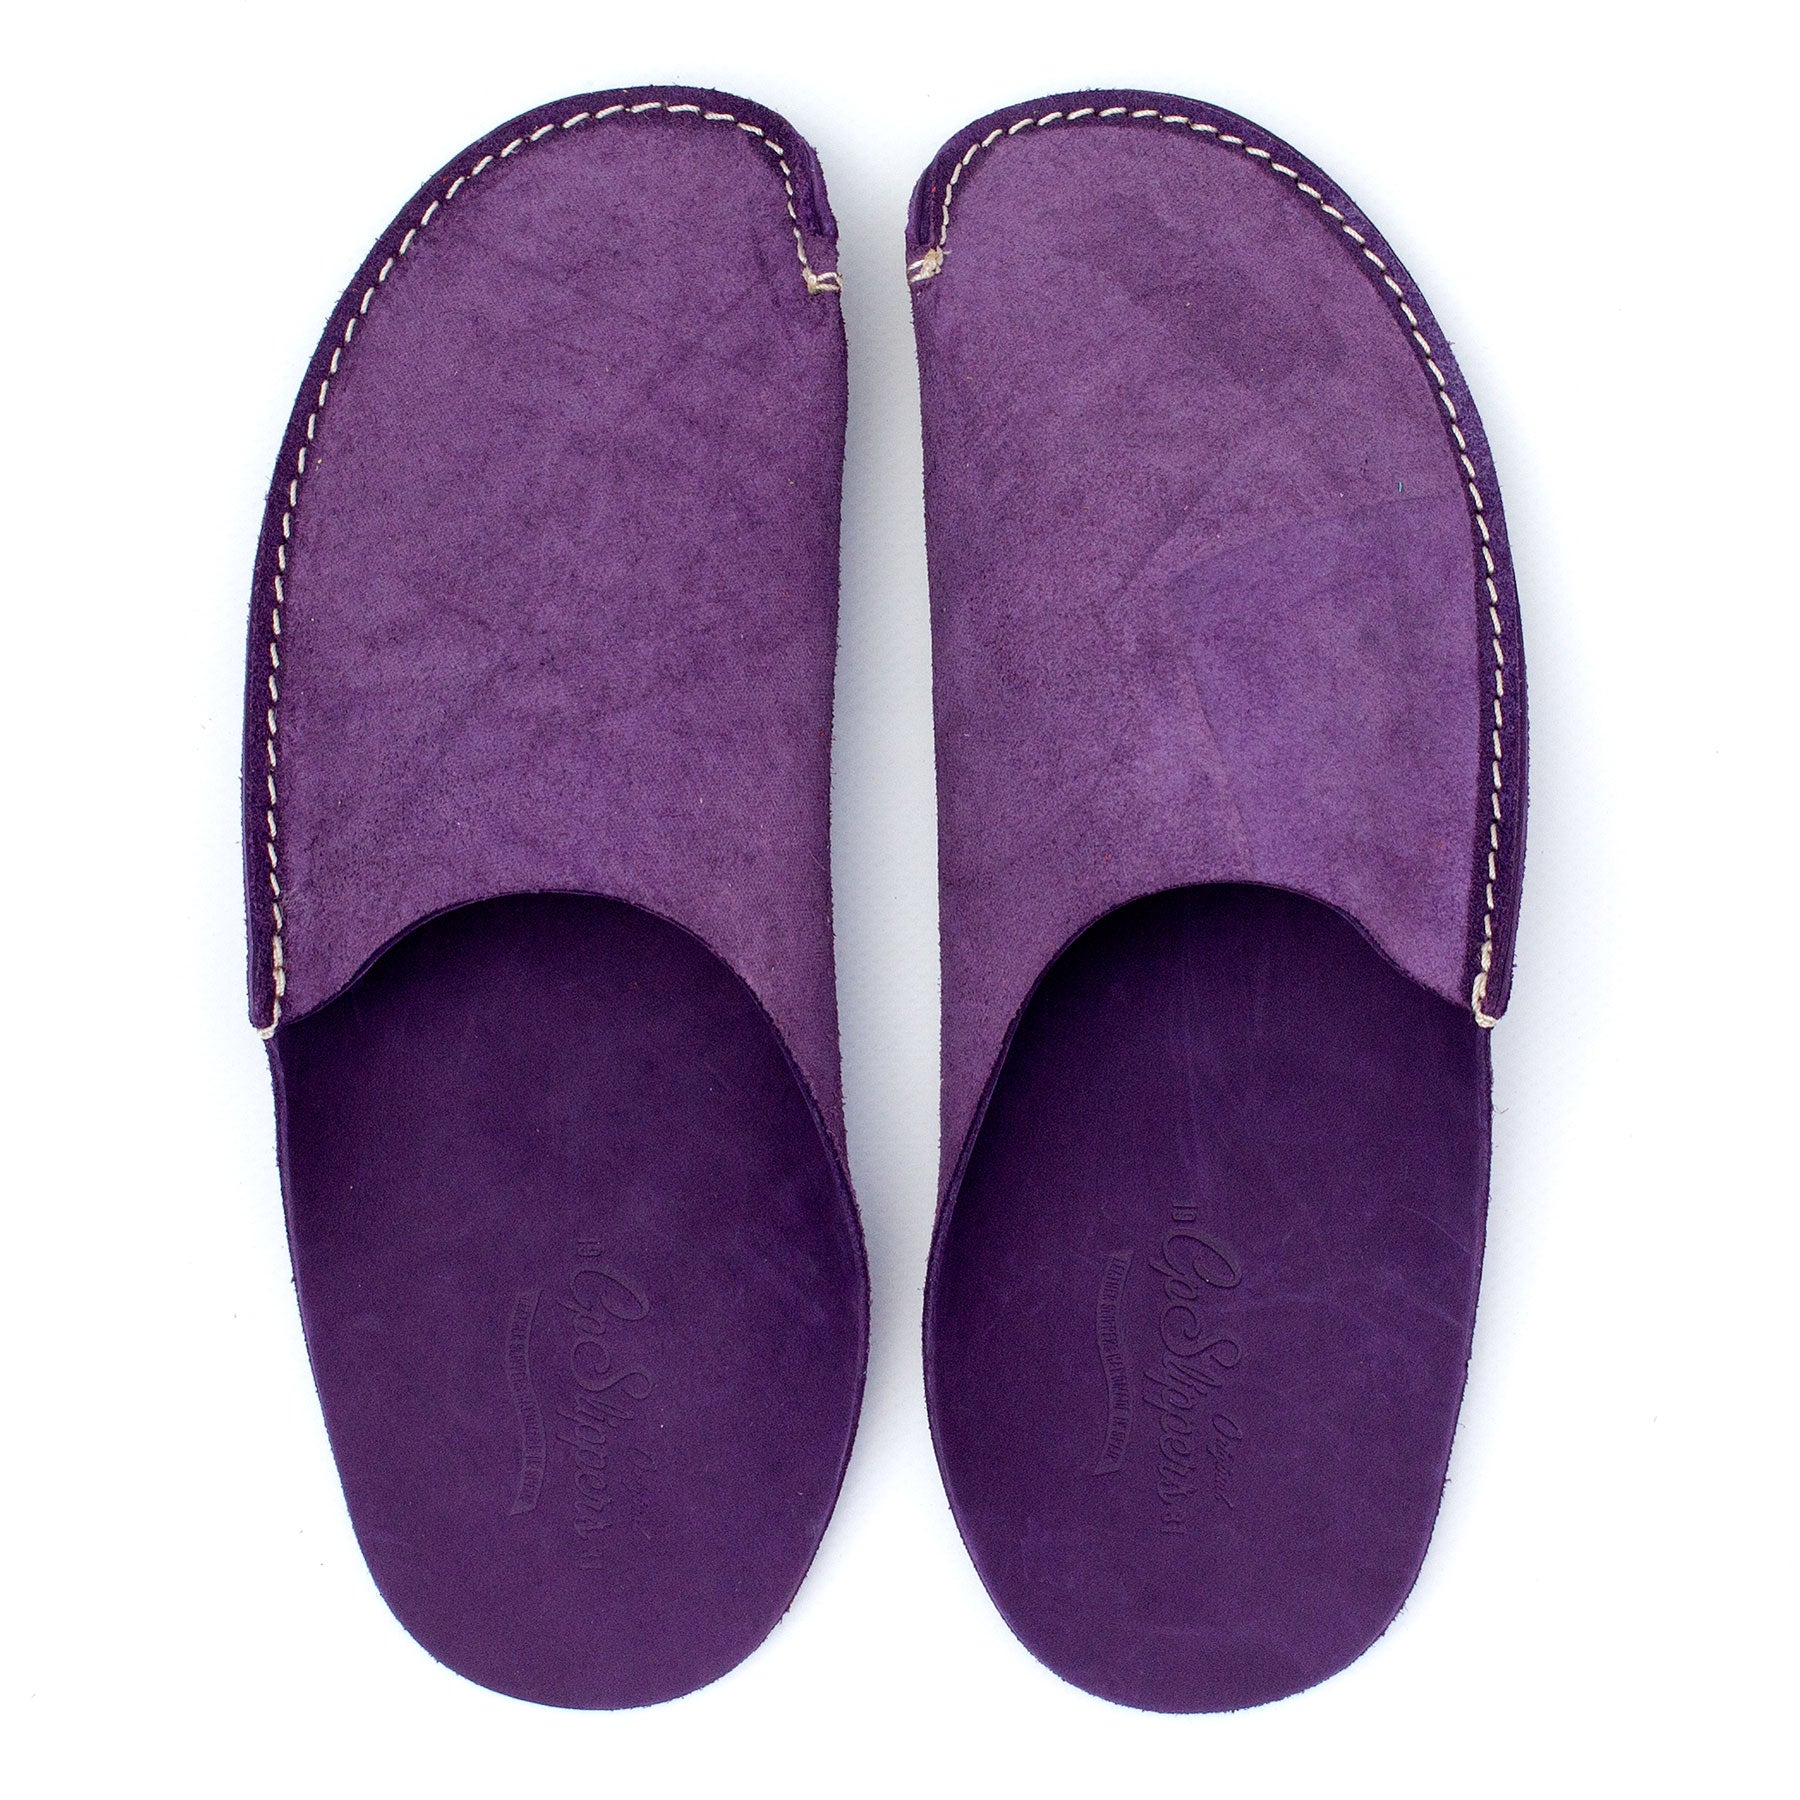 Violet CP Slippers Minimalist home shoes for man and woman